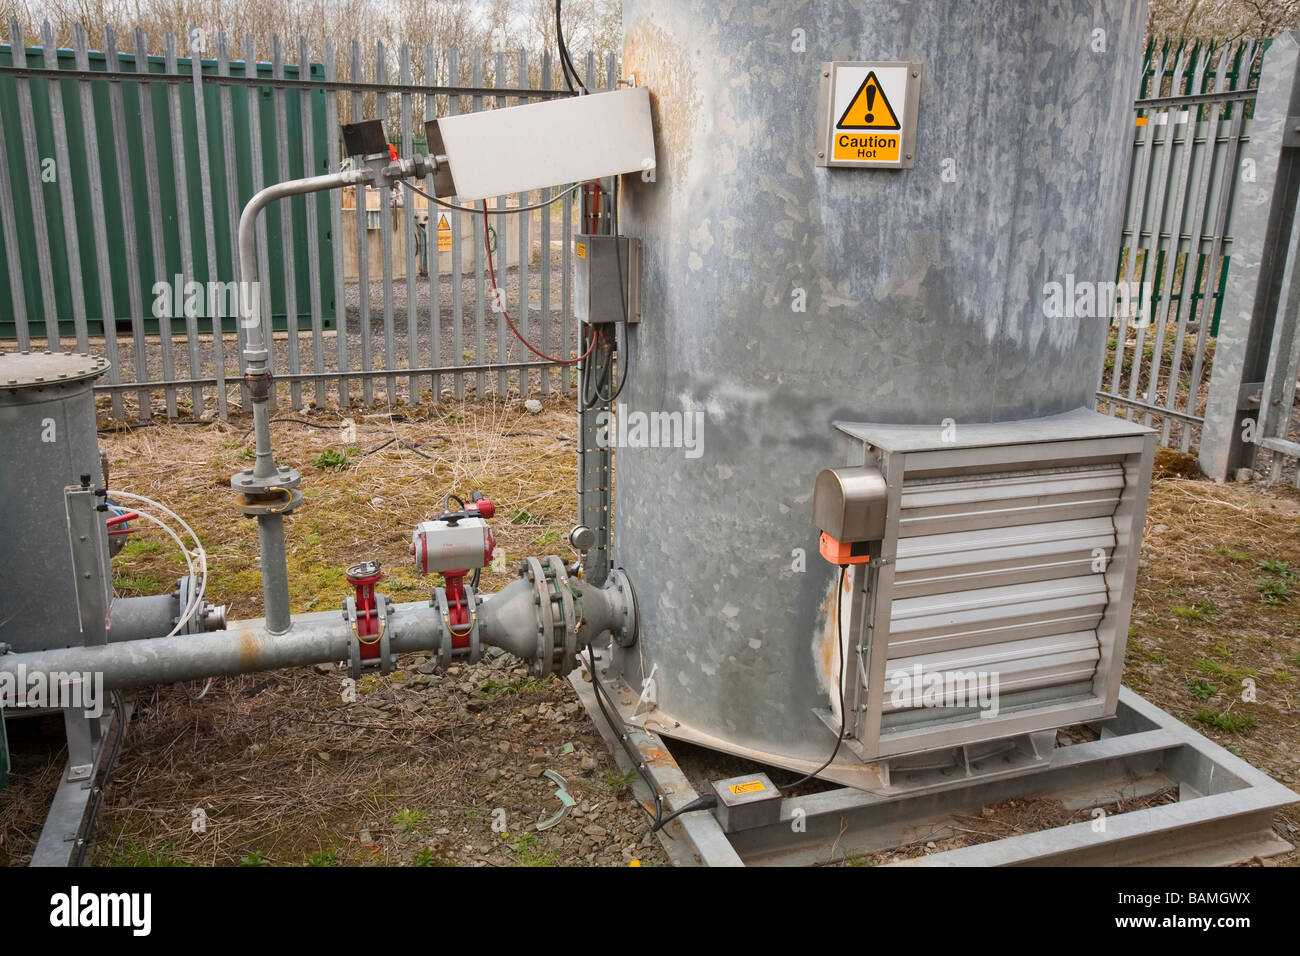 A methane burner at the old landfill site in Clitheroe Lancashire UK - Stock Image